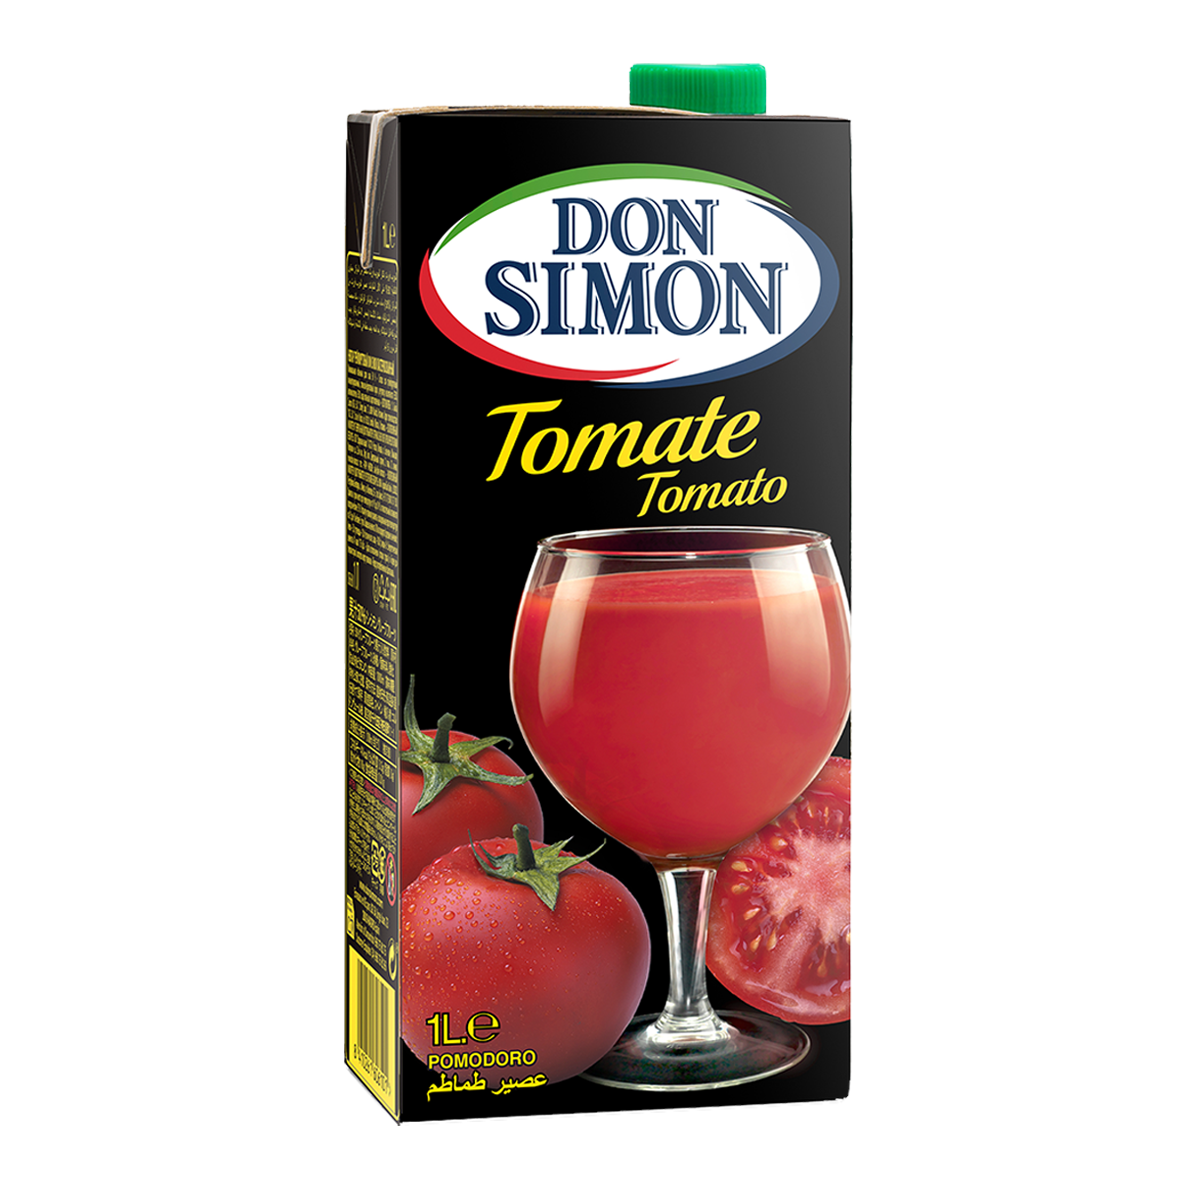 Don Simon Tomato Juice